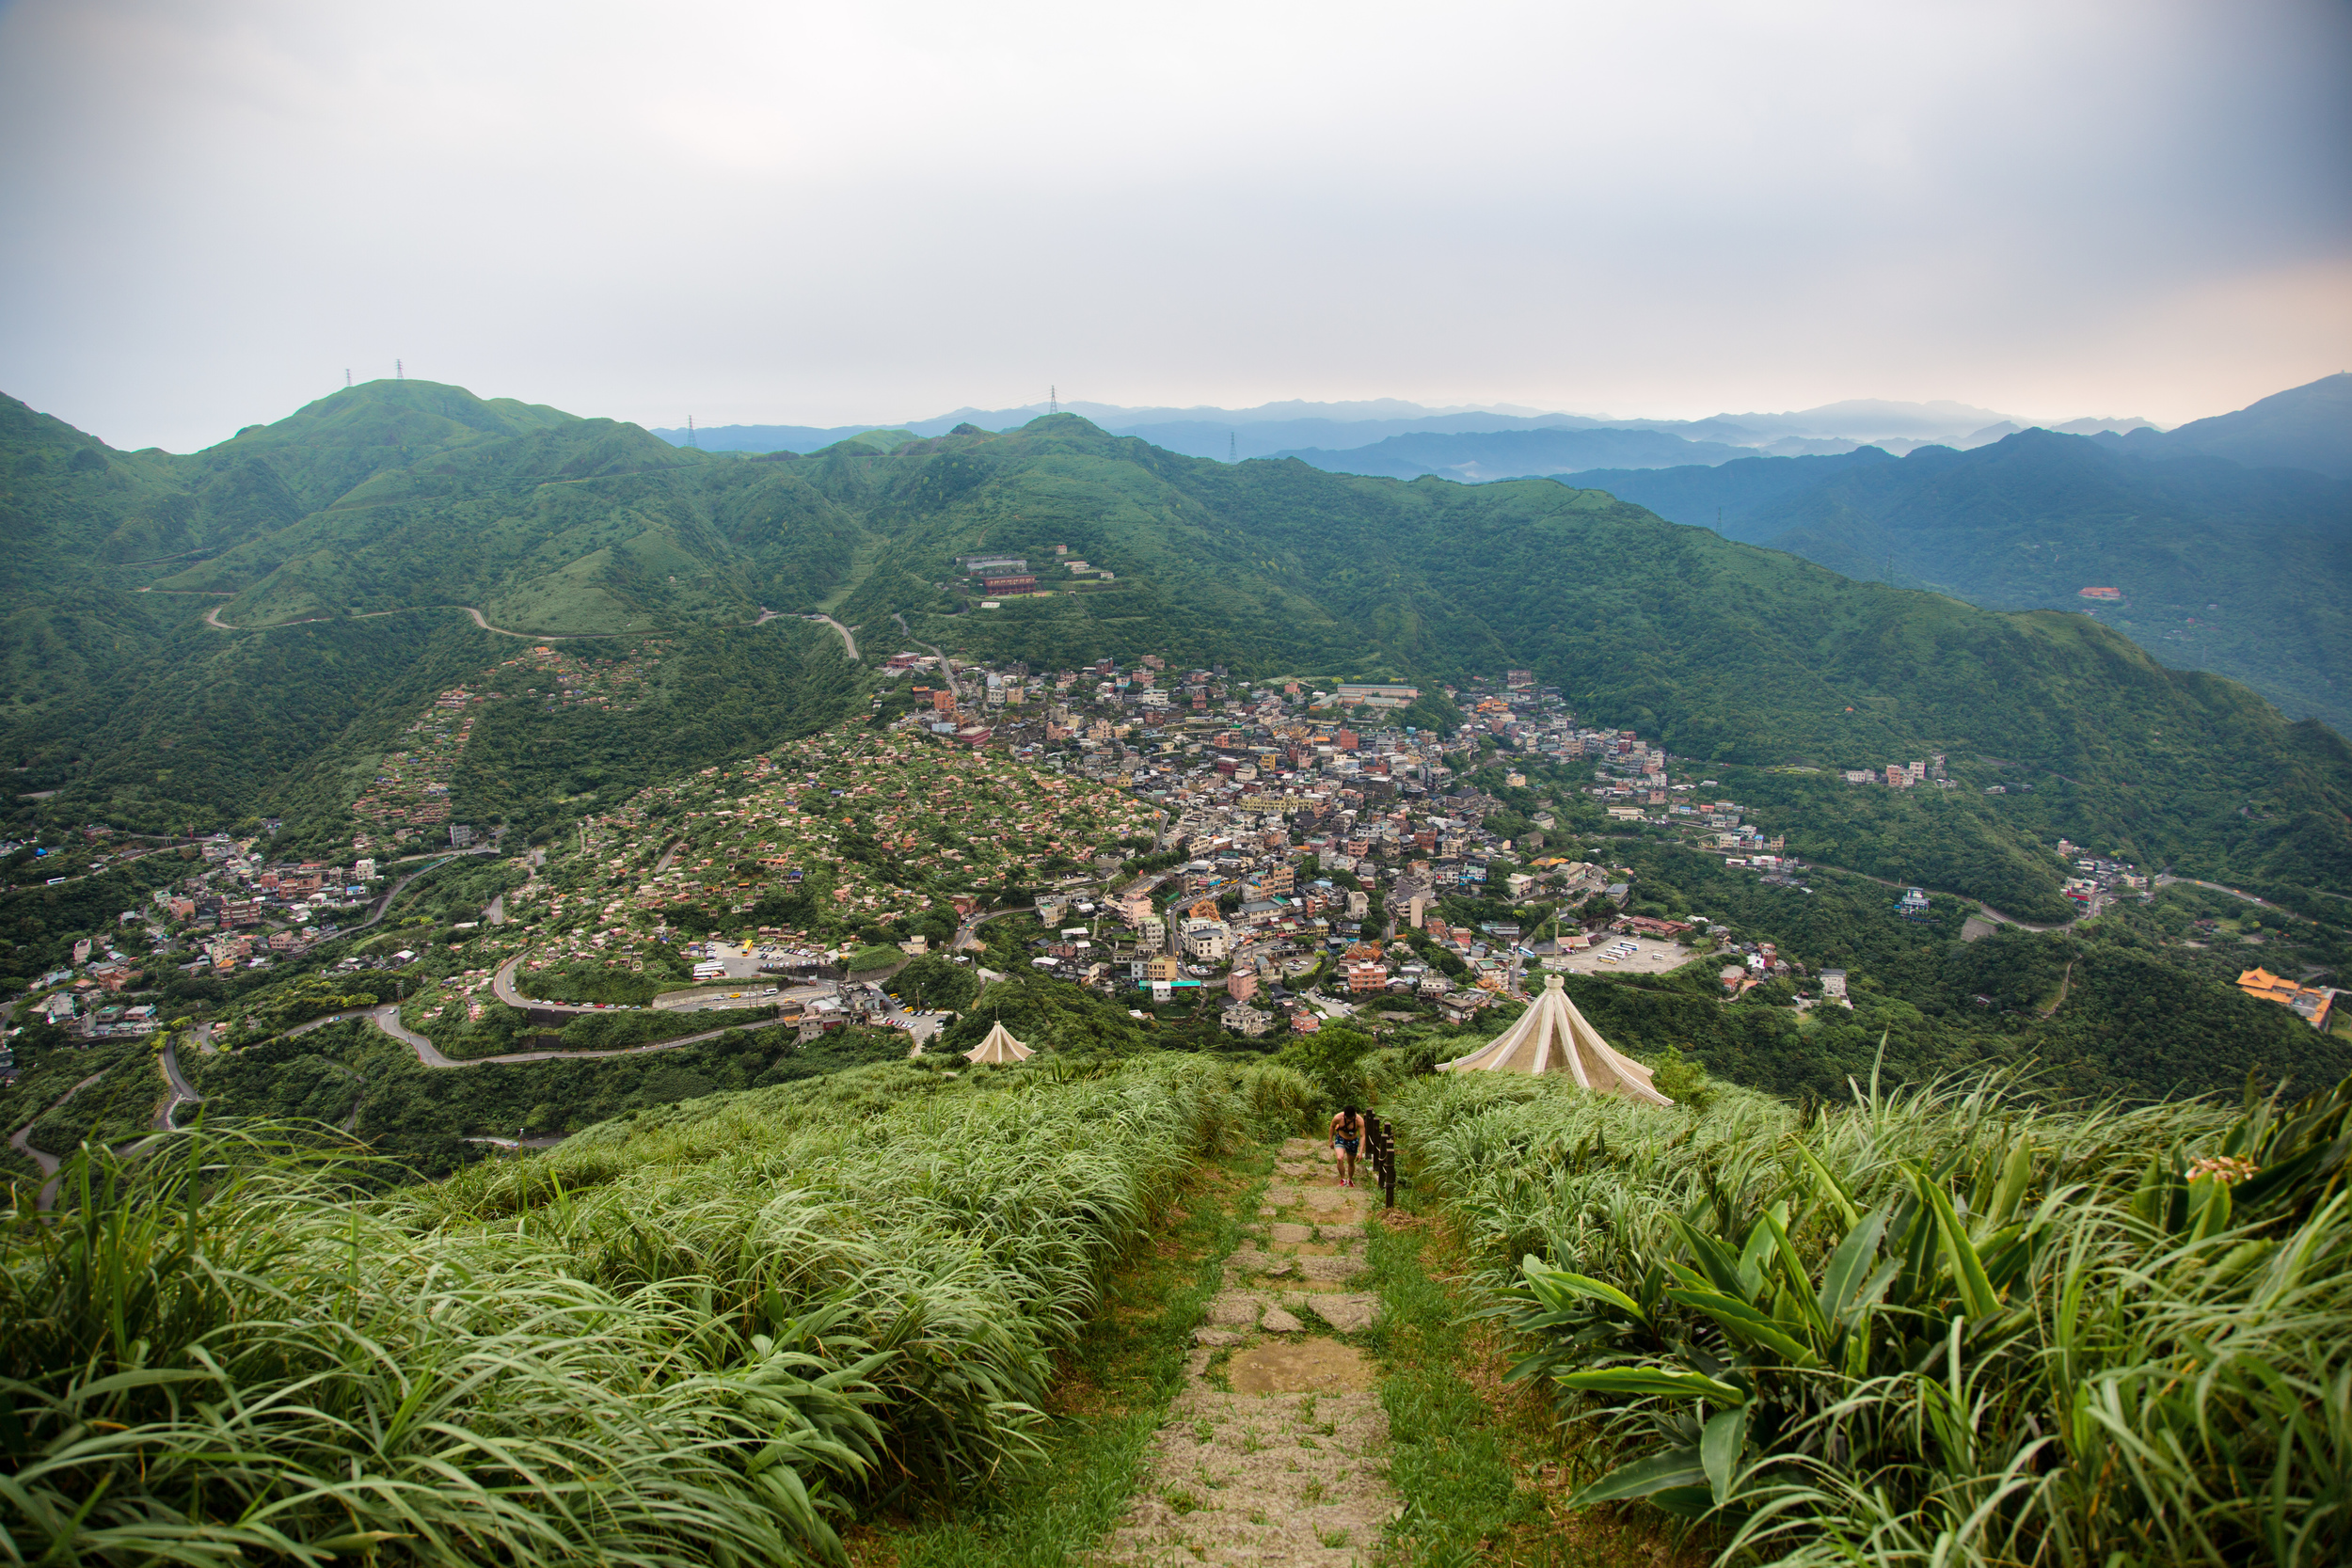 A hiker on his way to the peak of Jilong Mountain (雞籠山) with Jiufen in the background